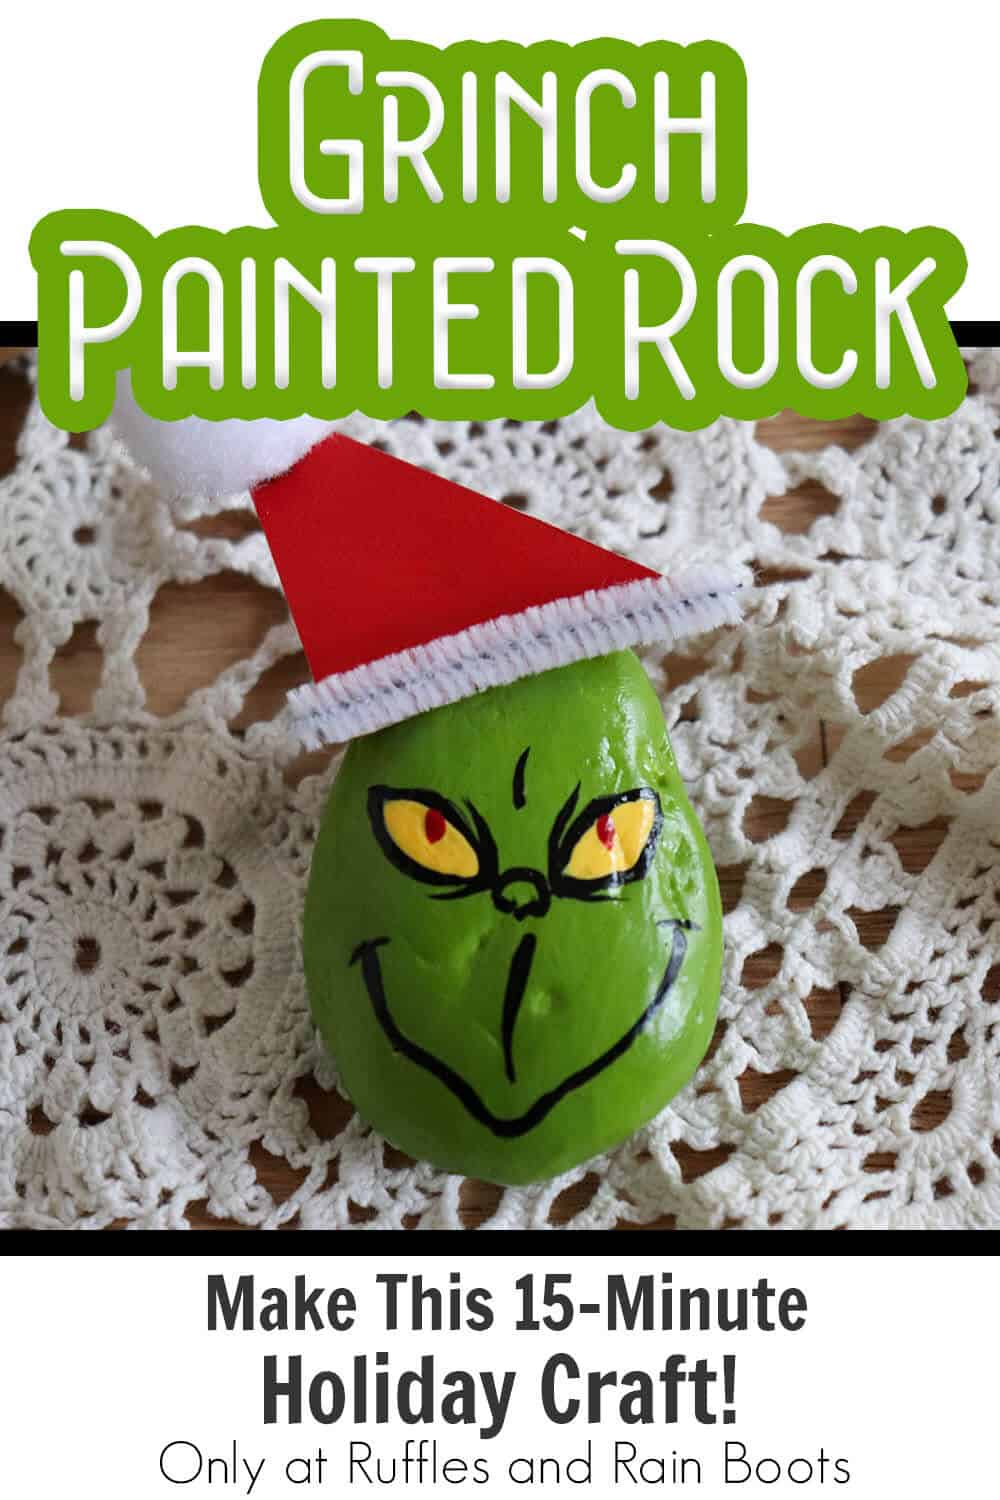 grinch who stole christmas rock painting craft with text which reads grinch painted rock make this 15-minute holiday craft!